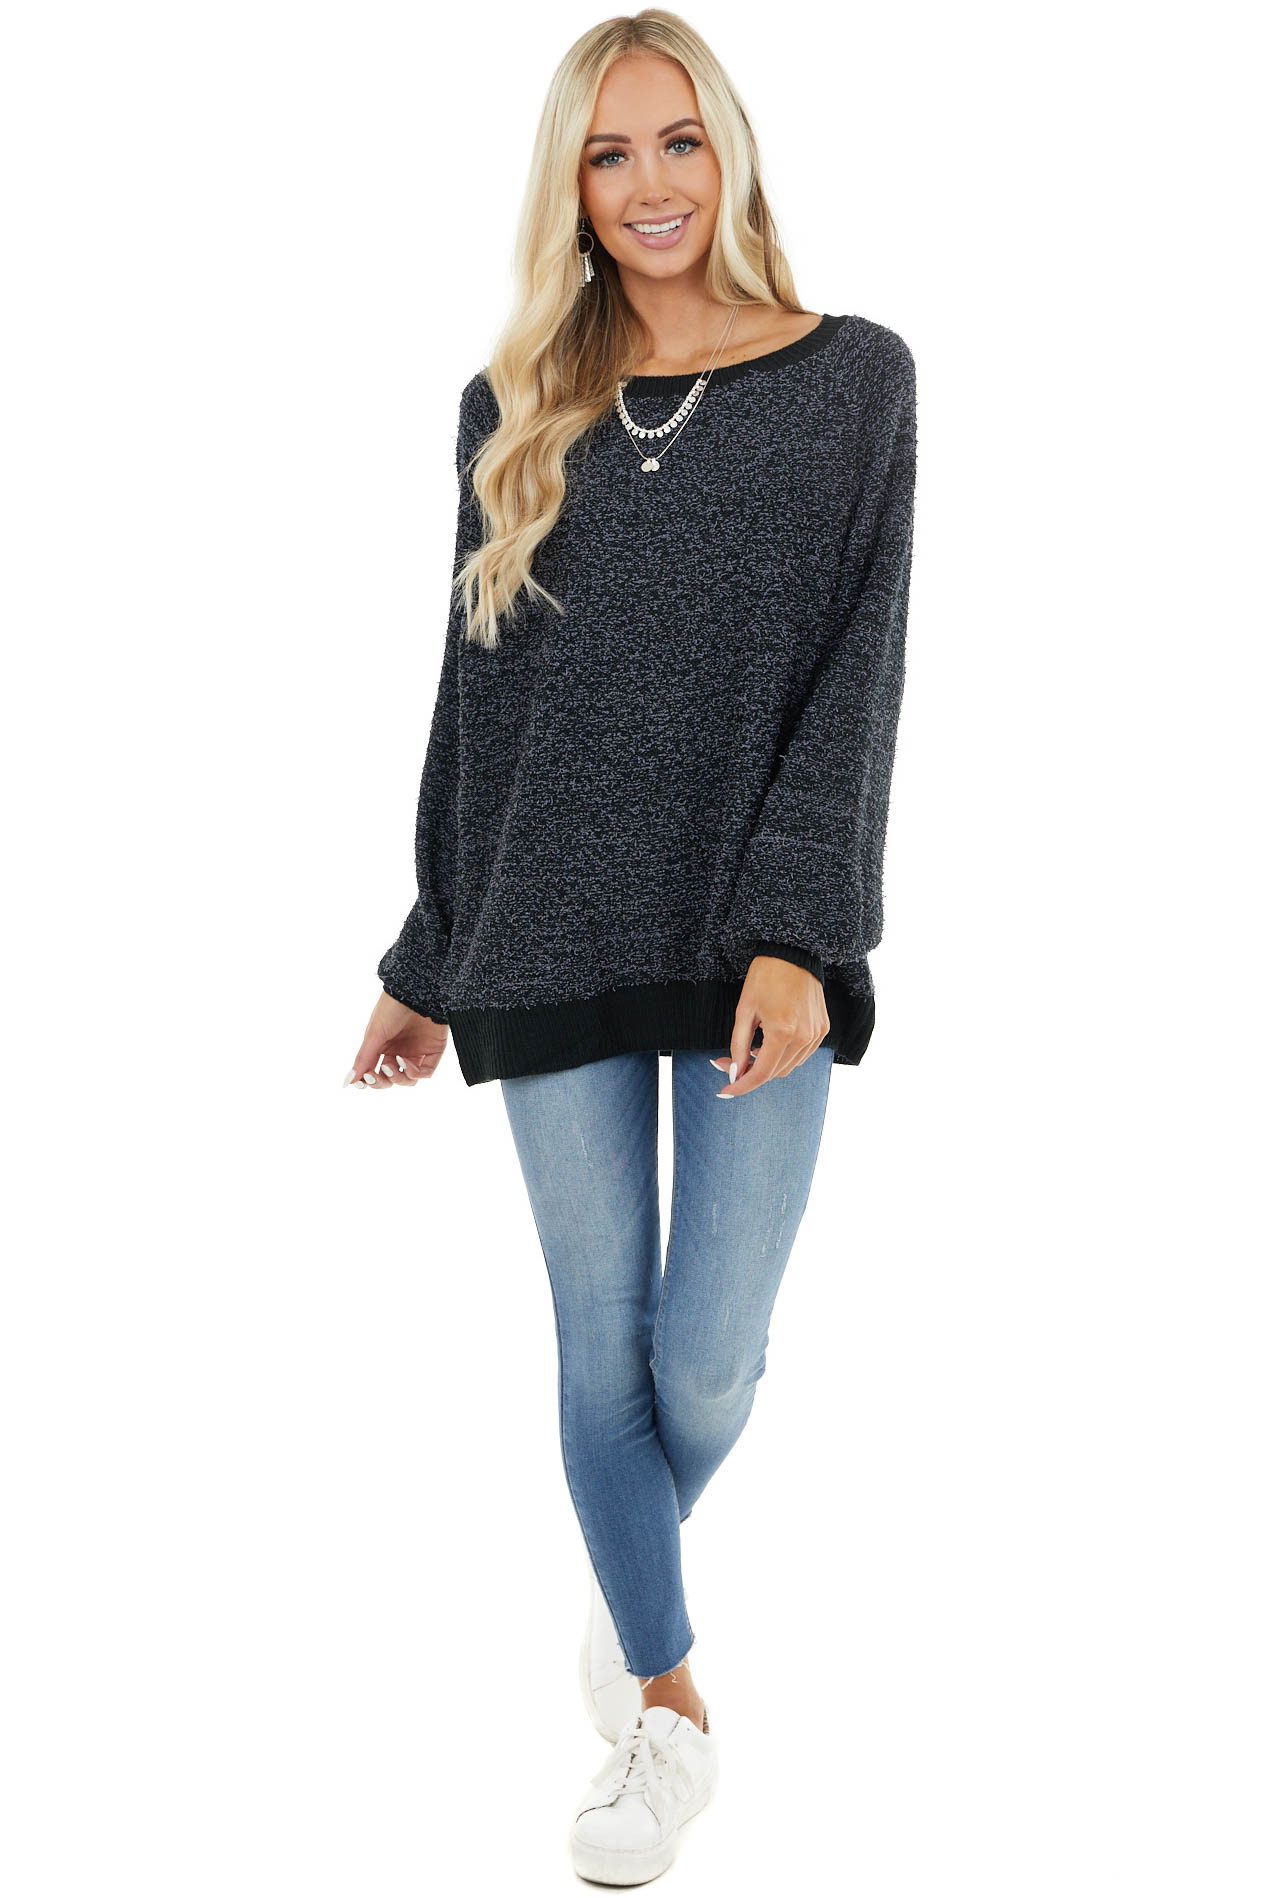 Charcoal Speckled Knit Pullover Sweater with Bubble Sleeves